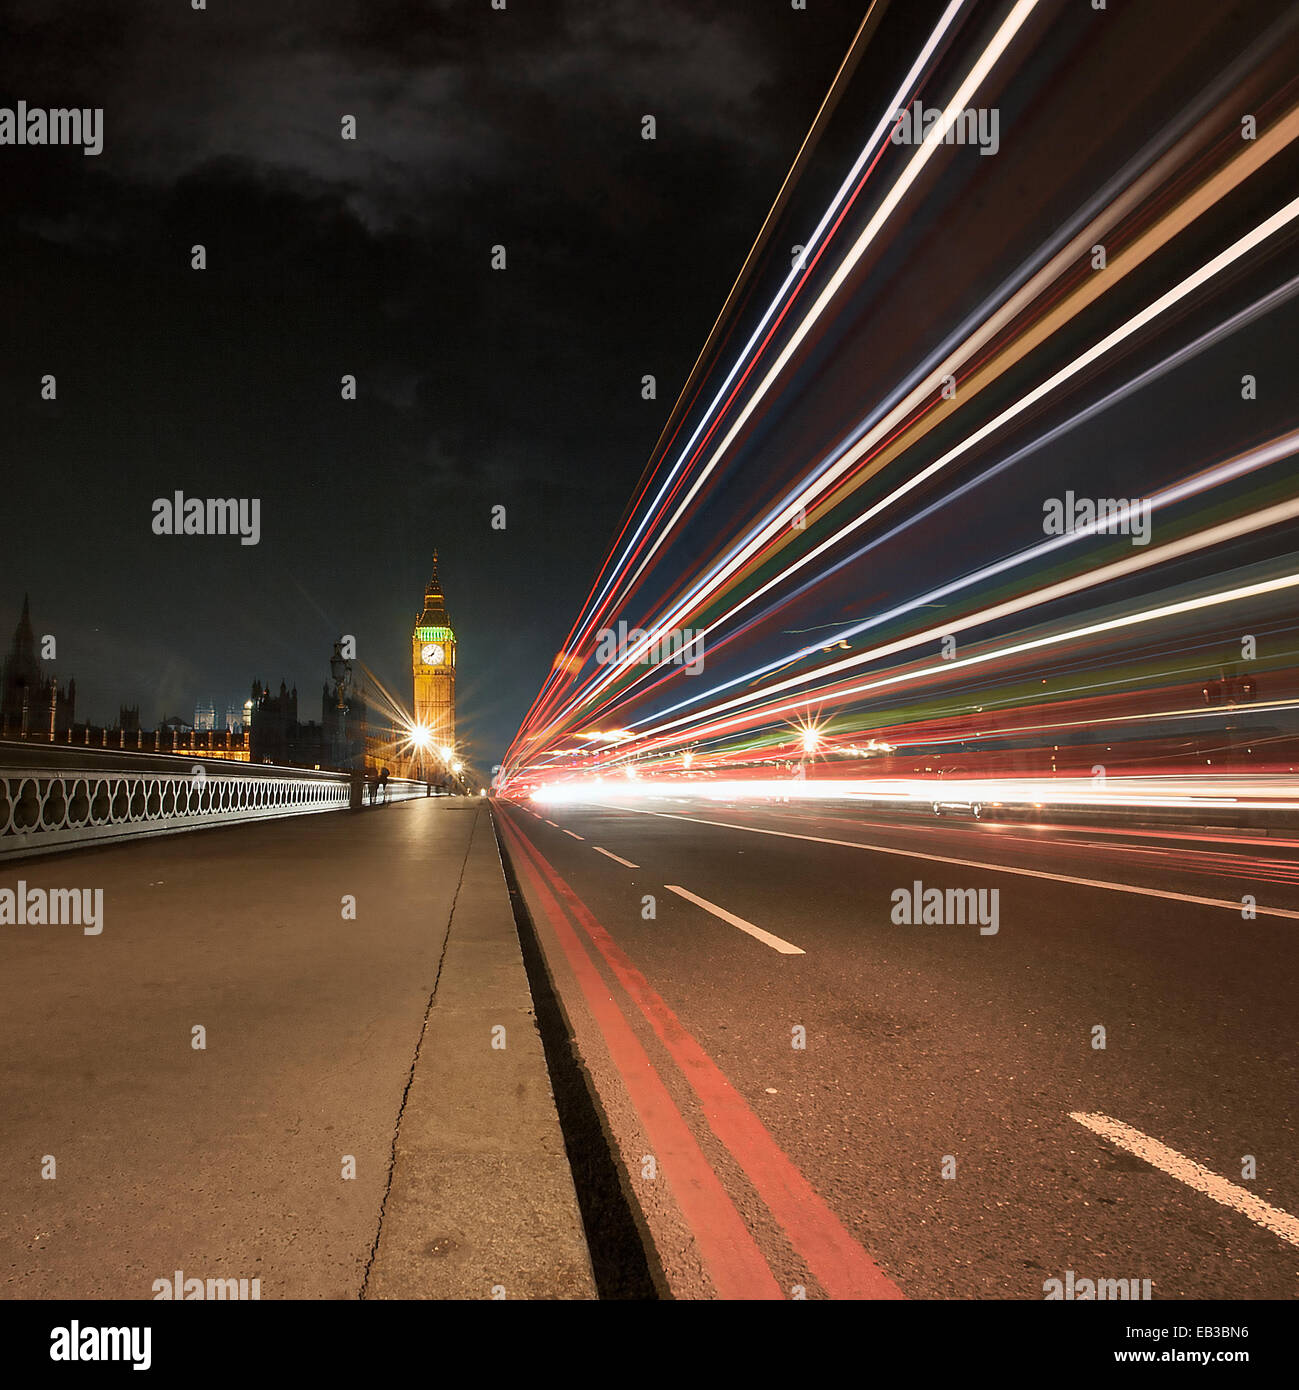 Großbritannien, England, London, Light trail auf Westminster Bridge Stockbild